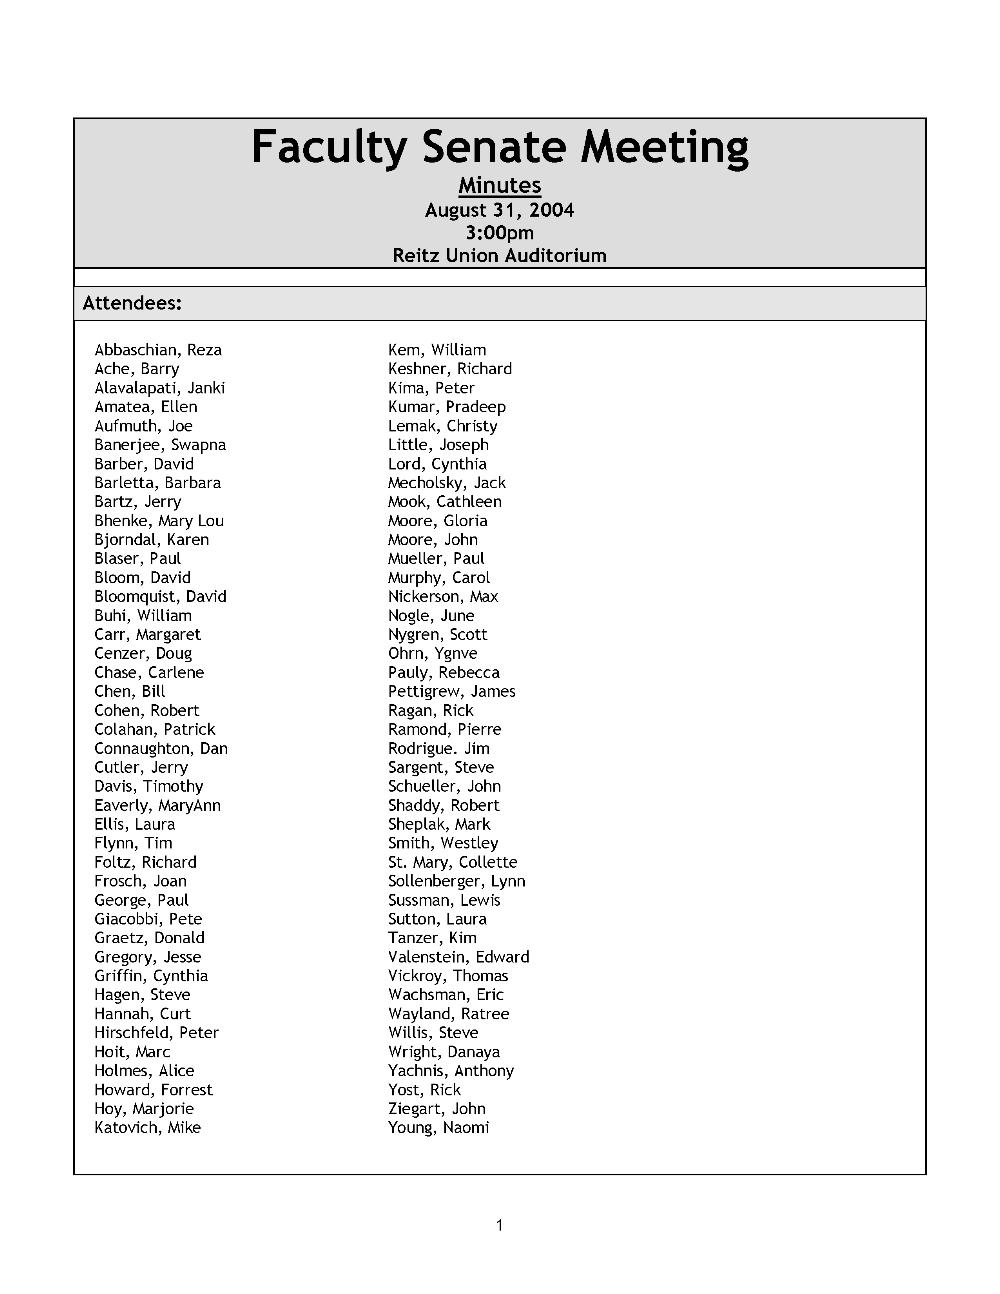 Faculty Senate meeting minutes - Page 1